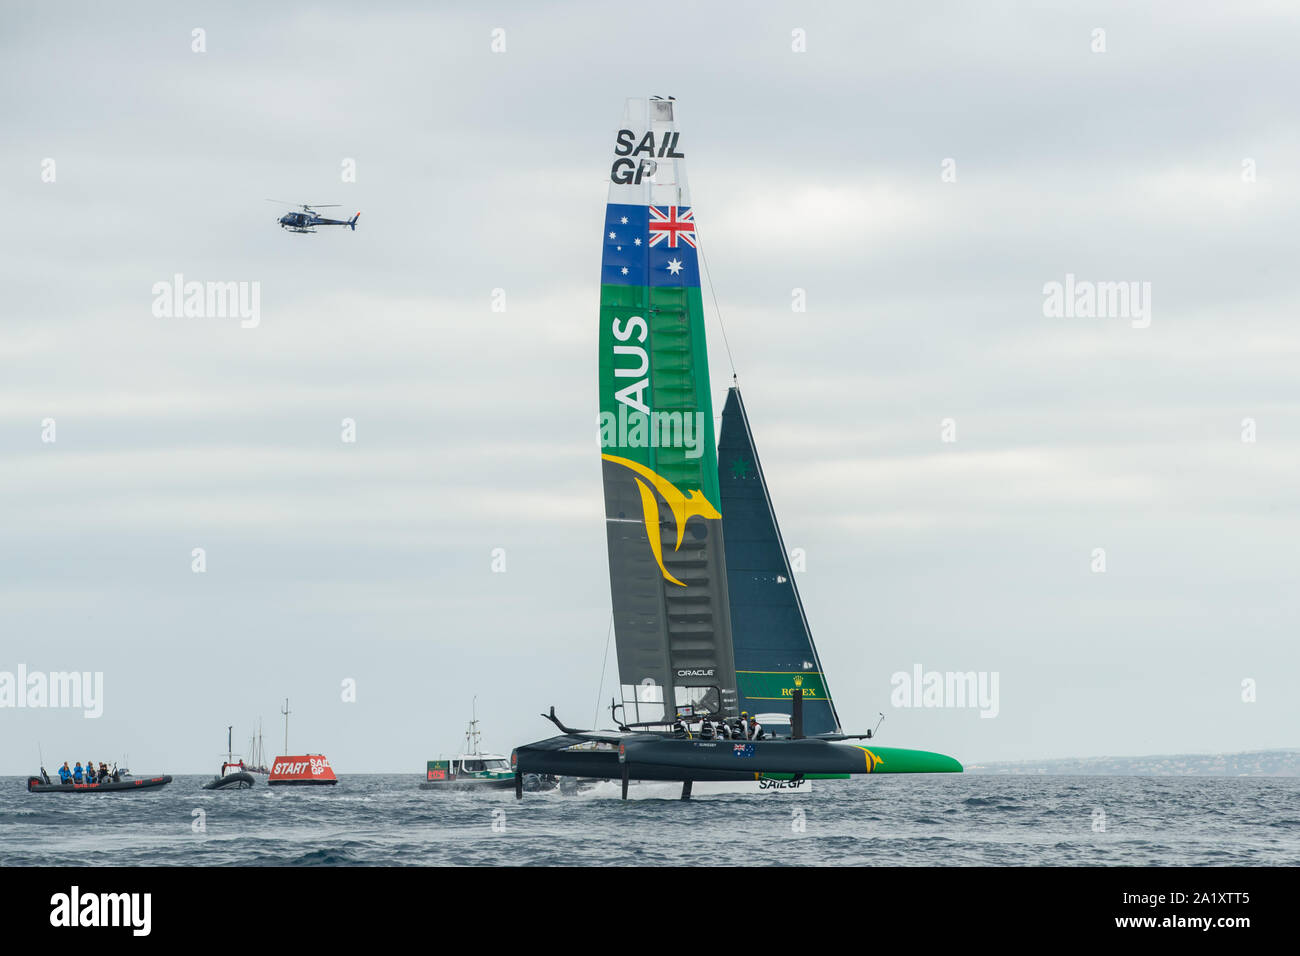 The Australia Team F50 catamaran in action. Race Day 3. The final SailGP event of Season 1 in Marseille, France Stock Photo